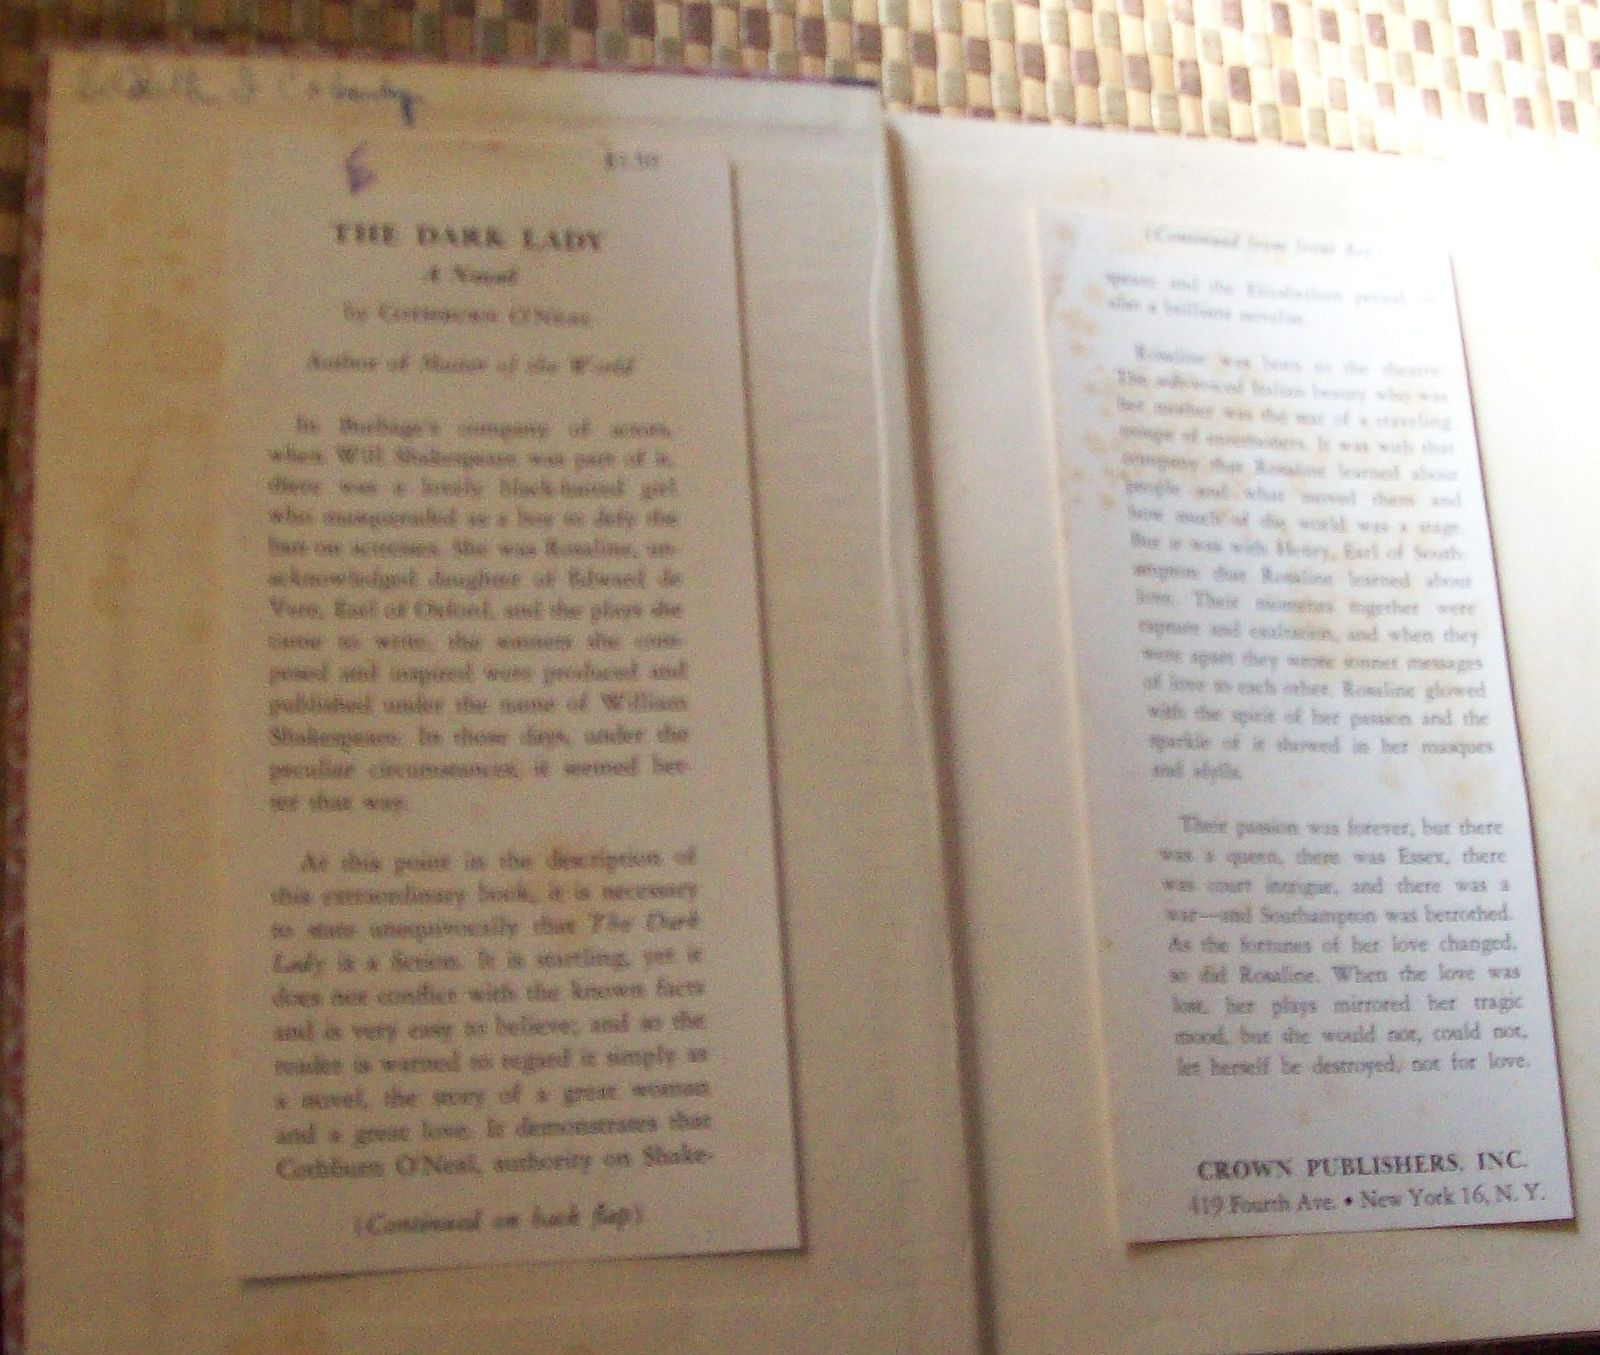 The Dark Lady by Cothburn O'Neal 1954 HB Wrote Shakespeare